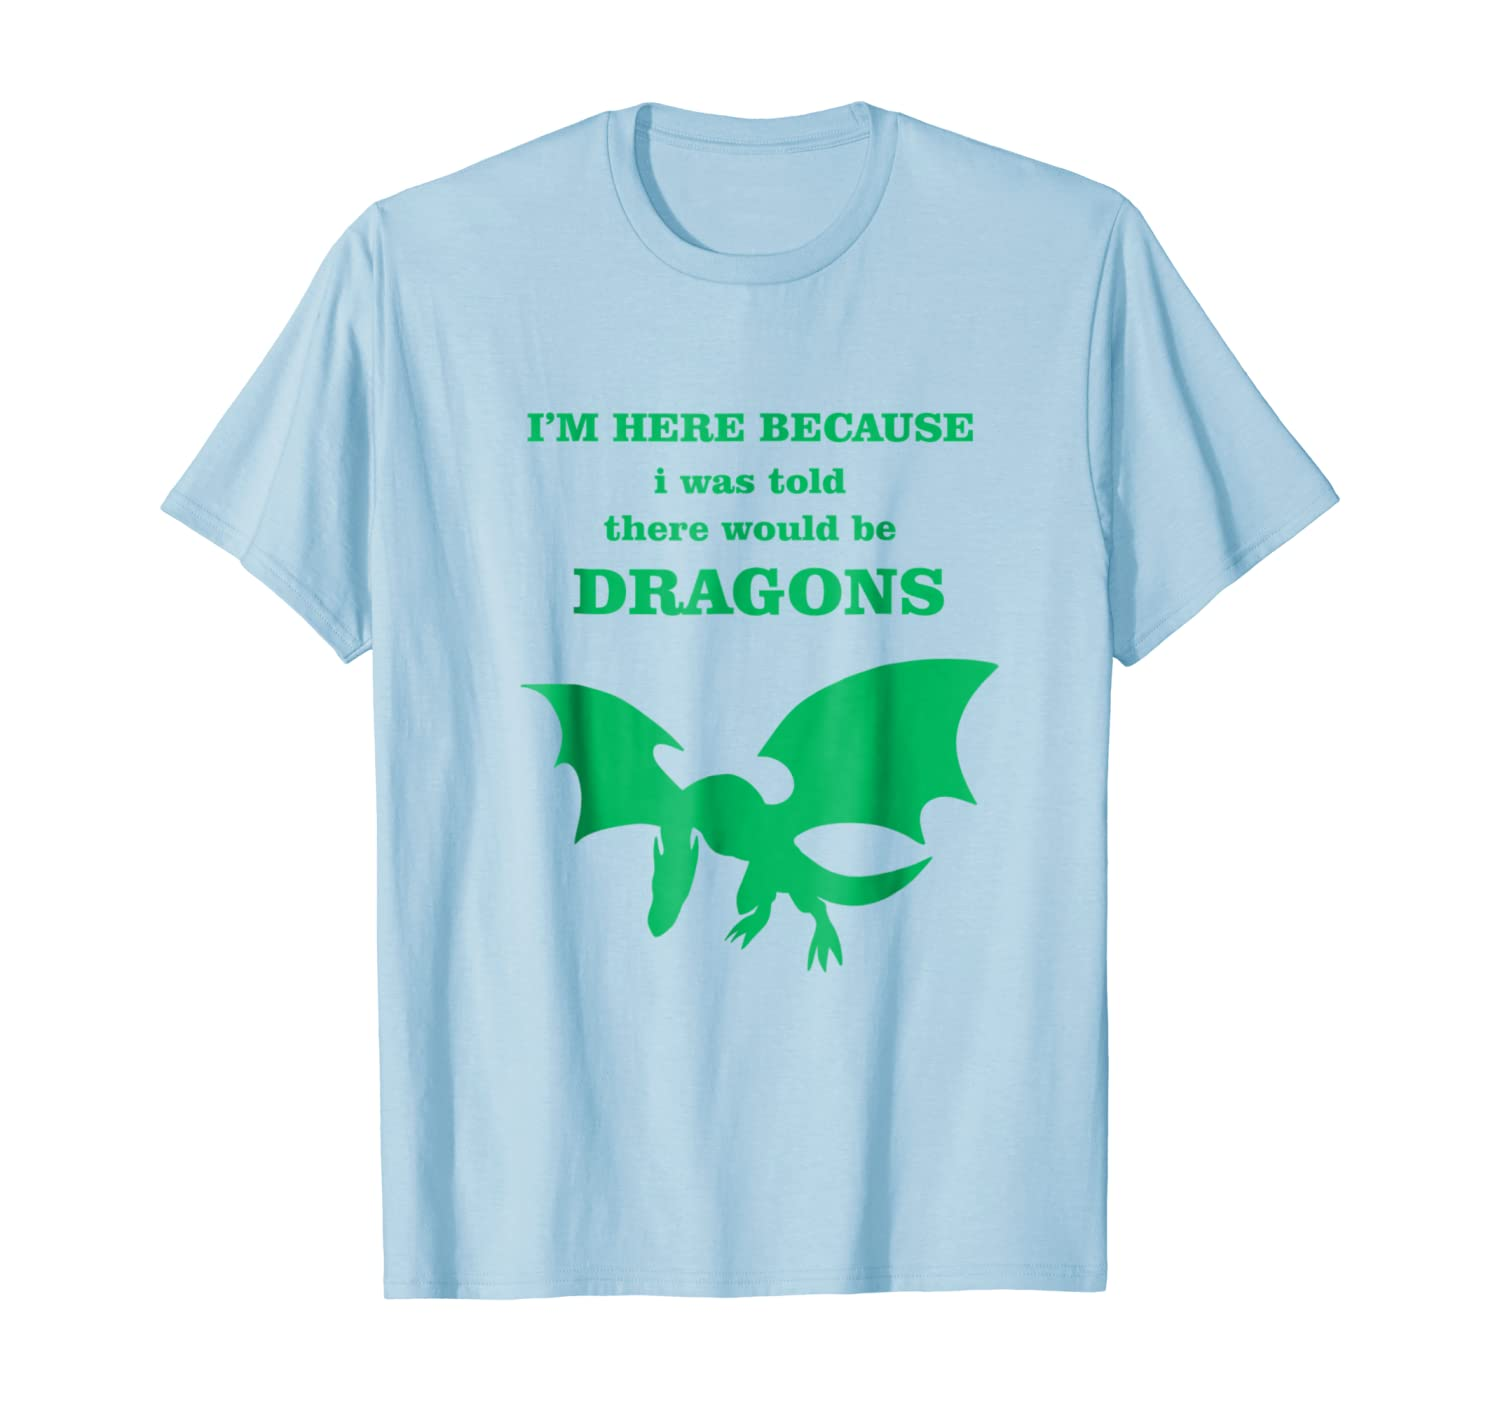 Was Told There Would Be Dragons Funny Shirts